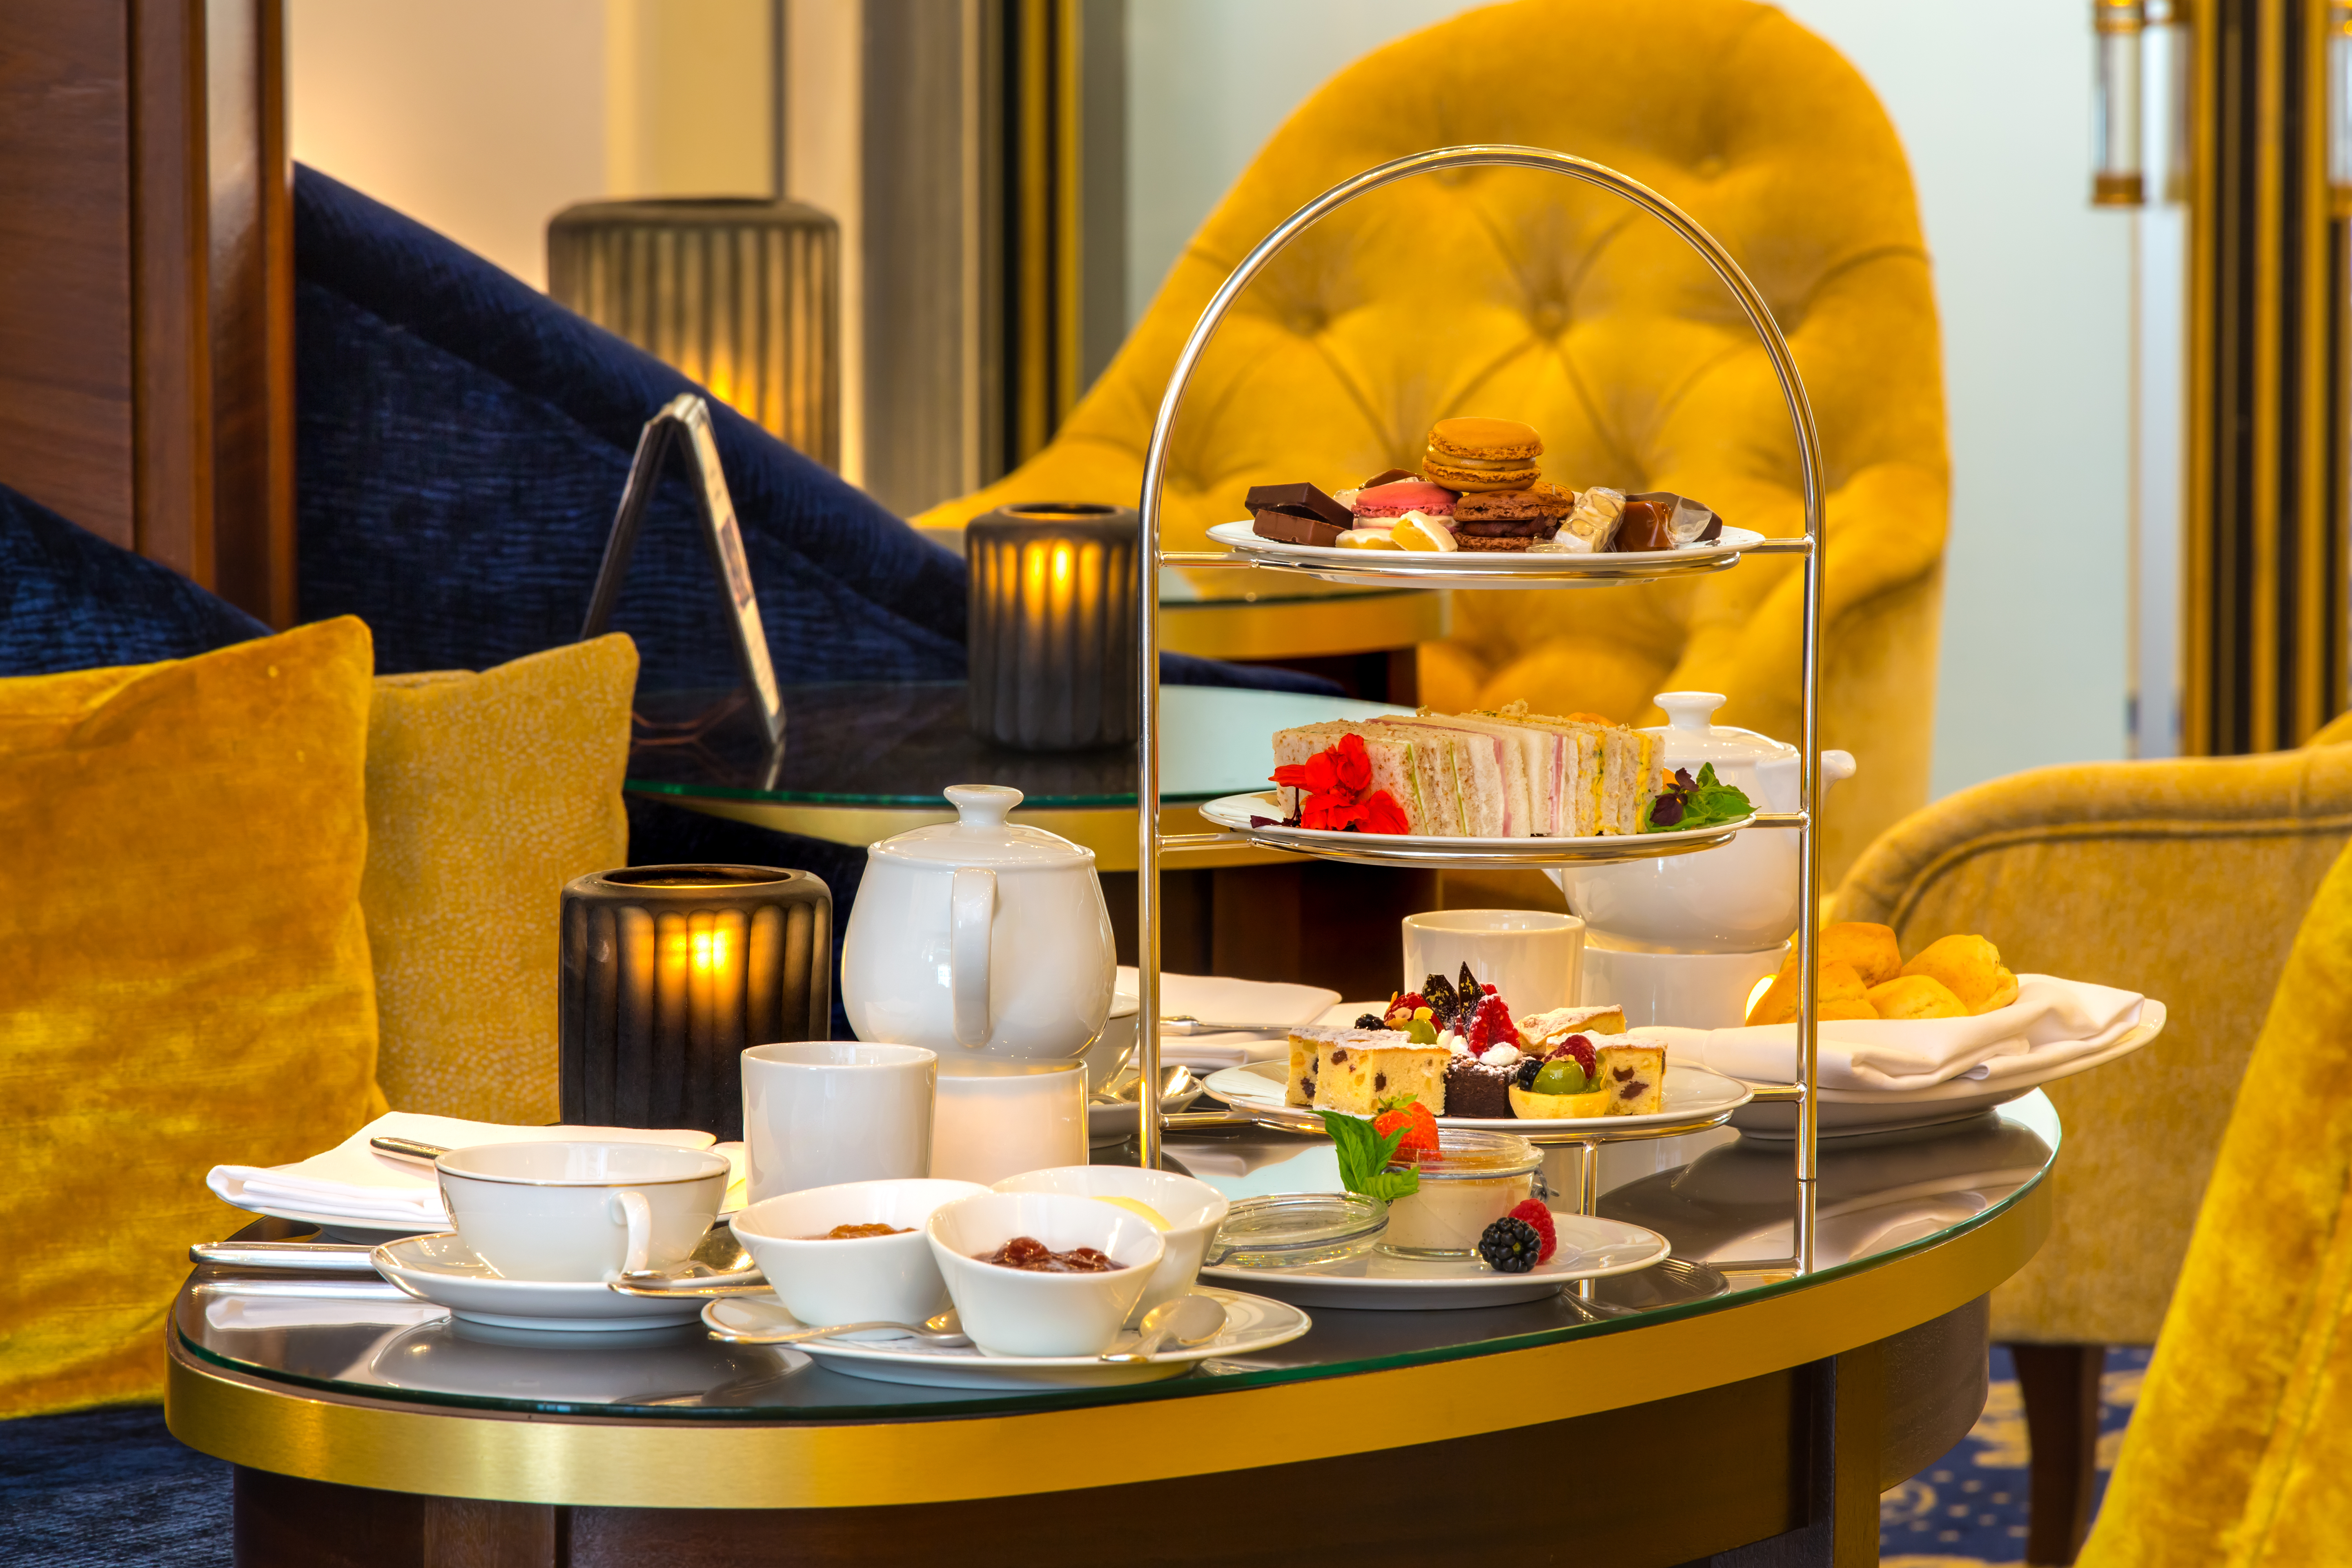 Afternoon Tea inspired by Pierre Hermé - Picture: Excelsior Hotel Ernst